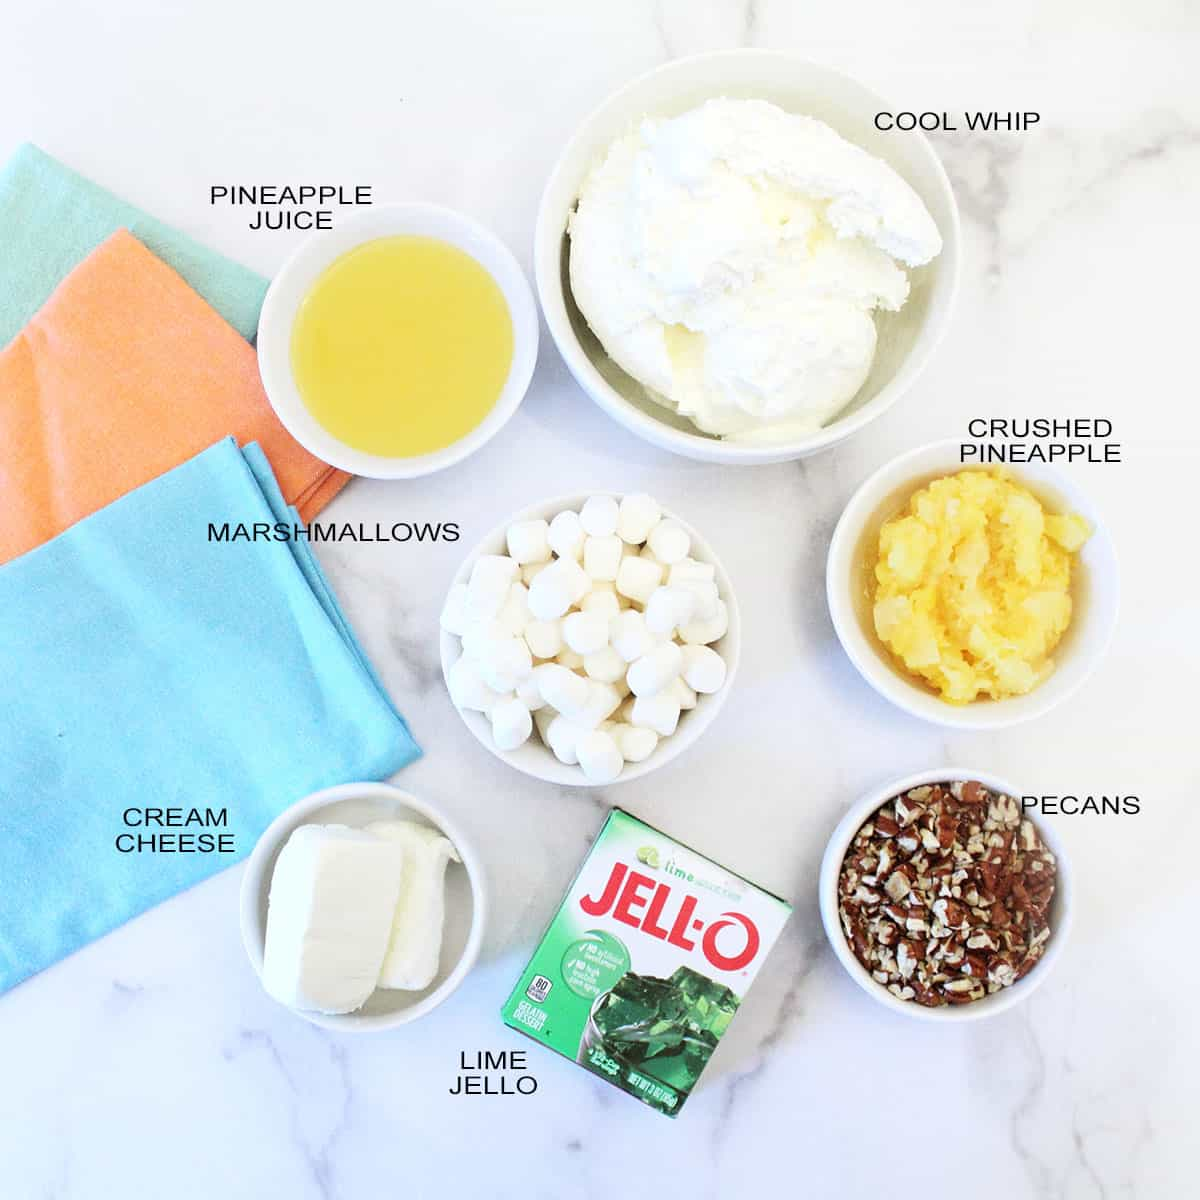 Ingredients labeled for lime jello fluff.